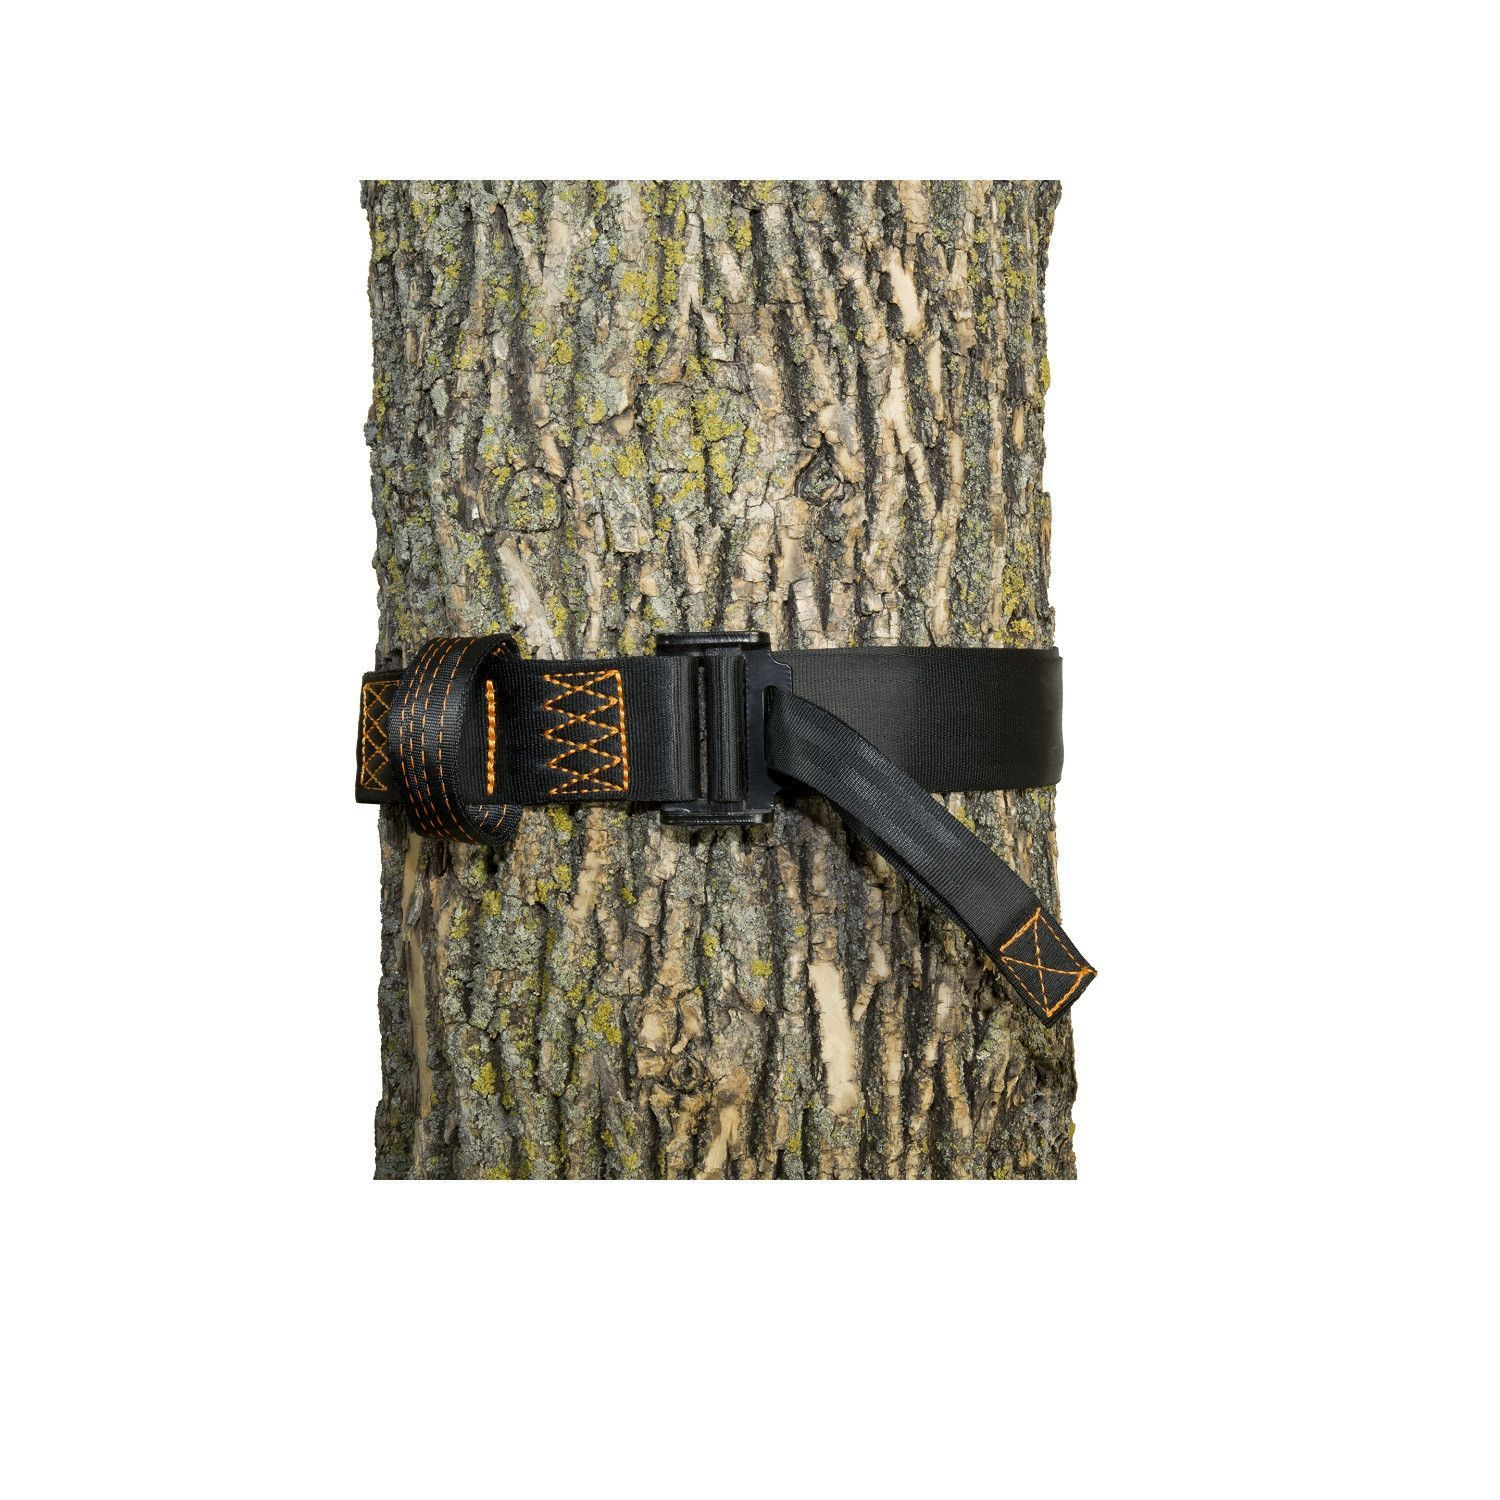 Muddy Safety Harness Tree Strap Tree stand accessories